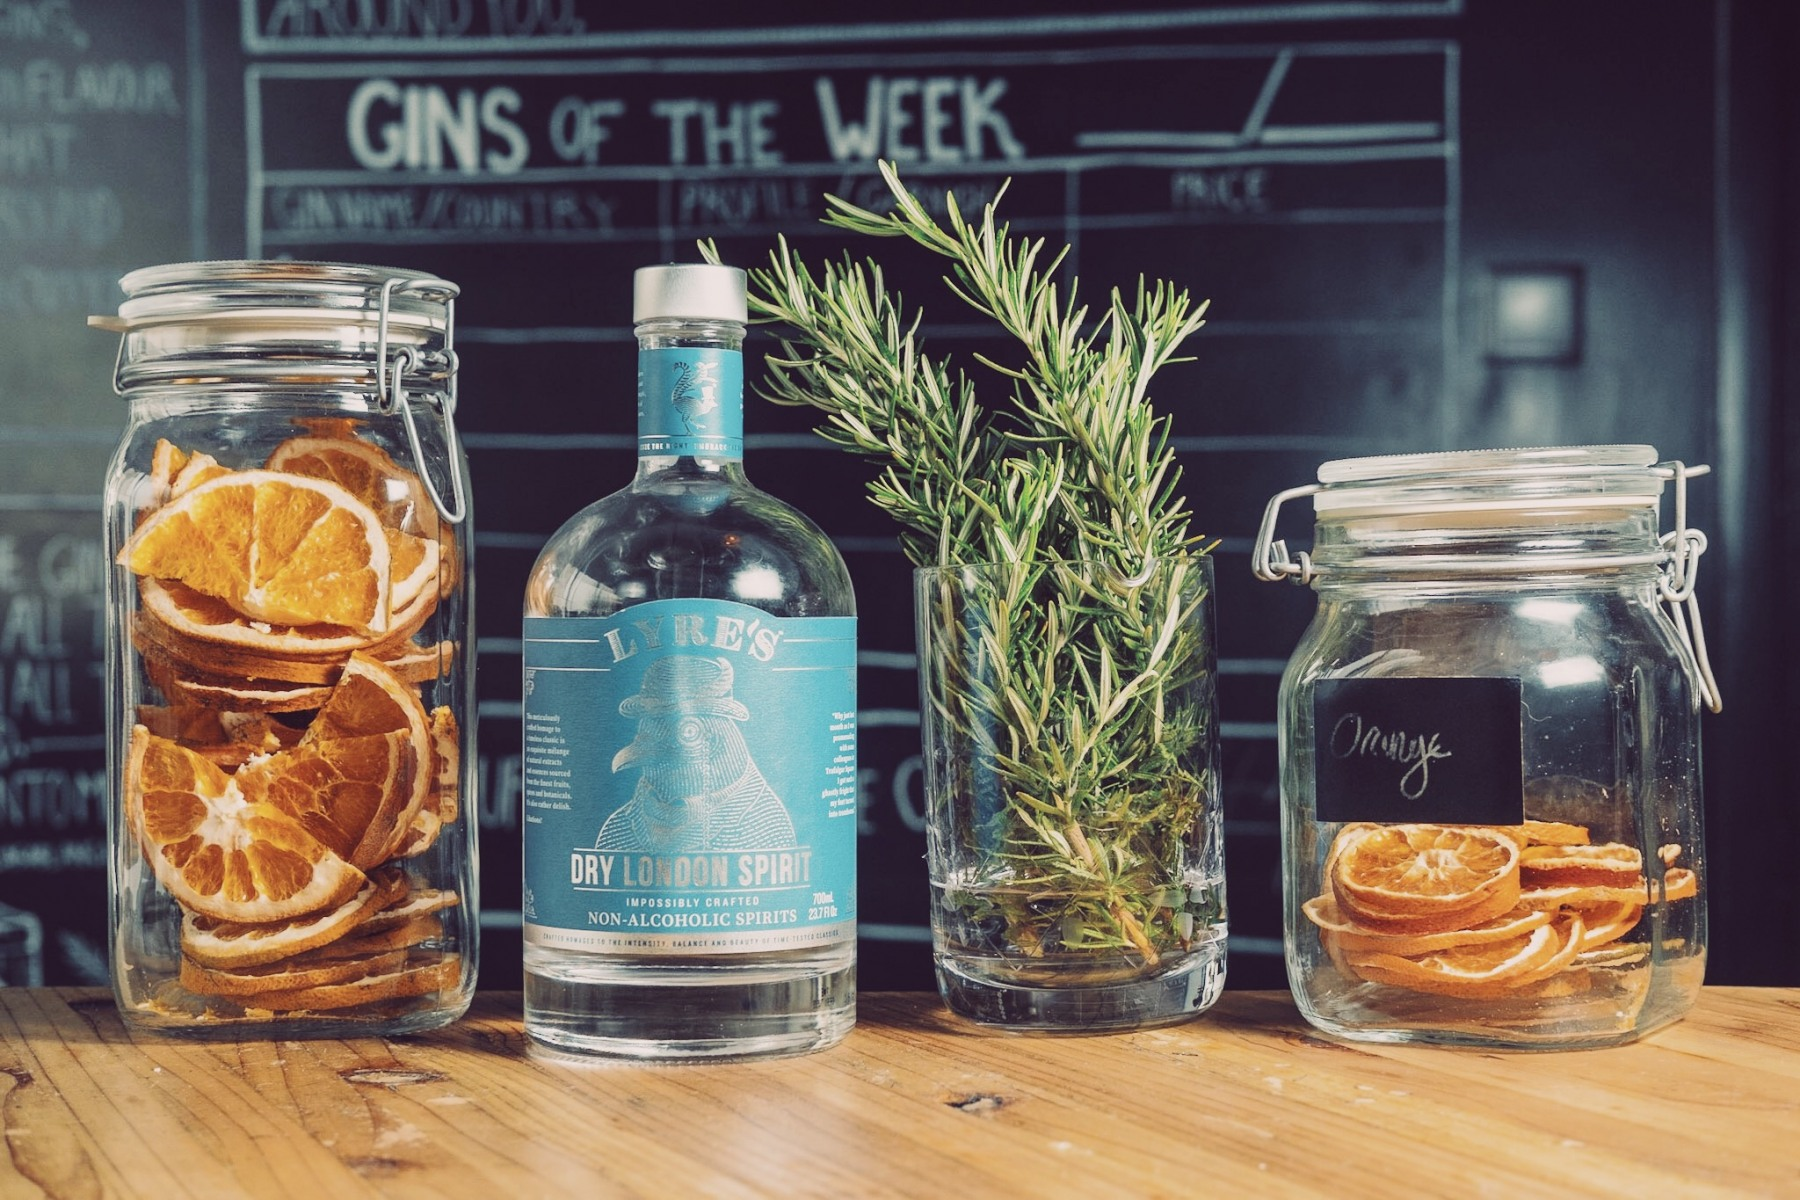 New alcoholic gins at The Gin Library